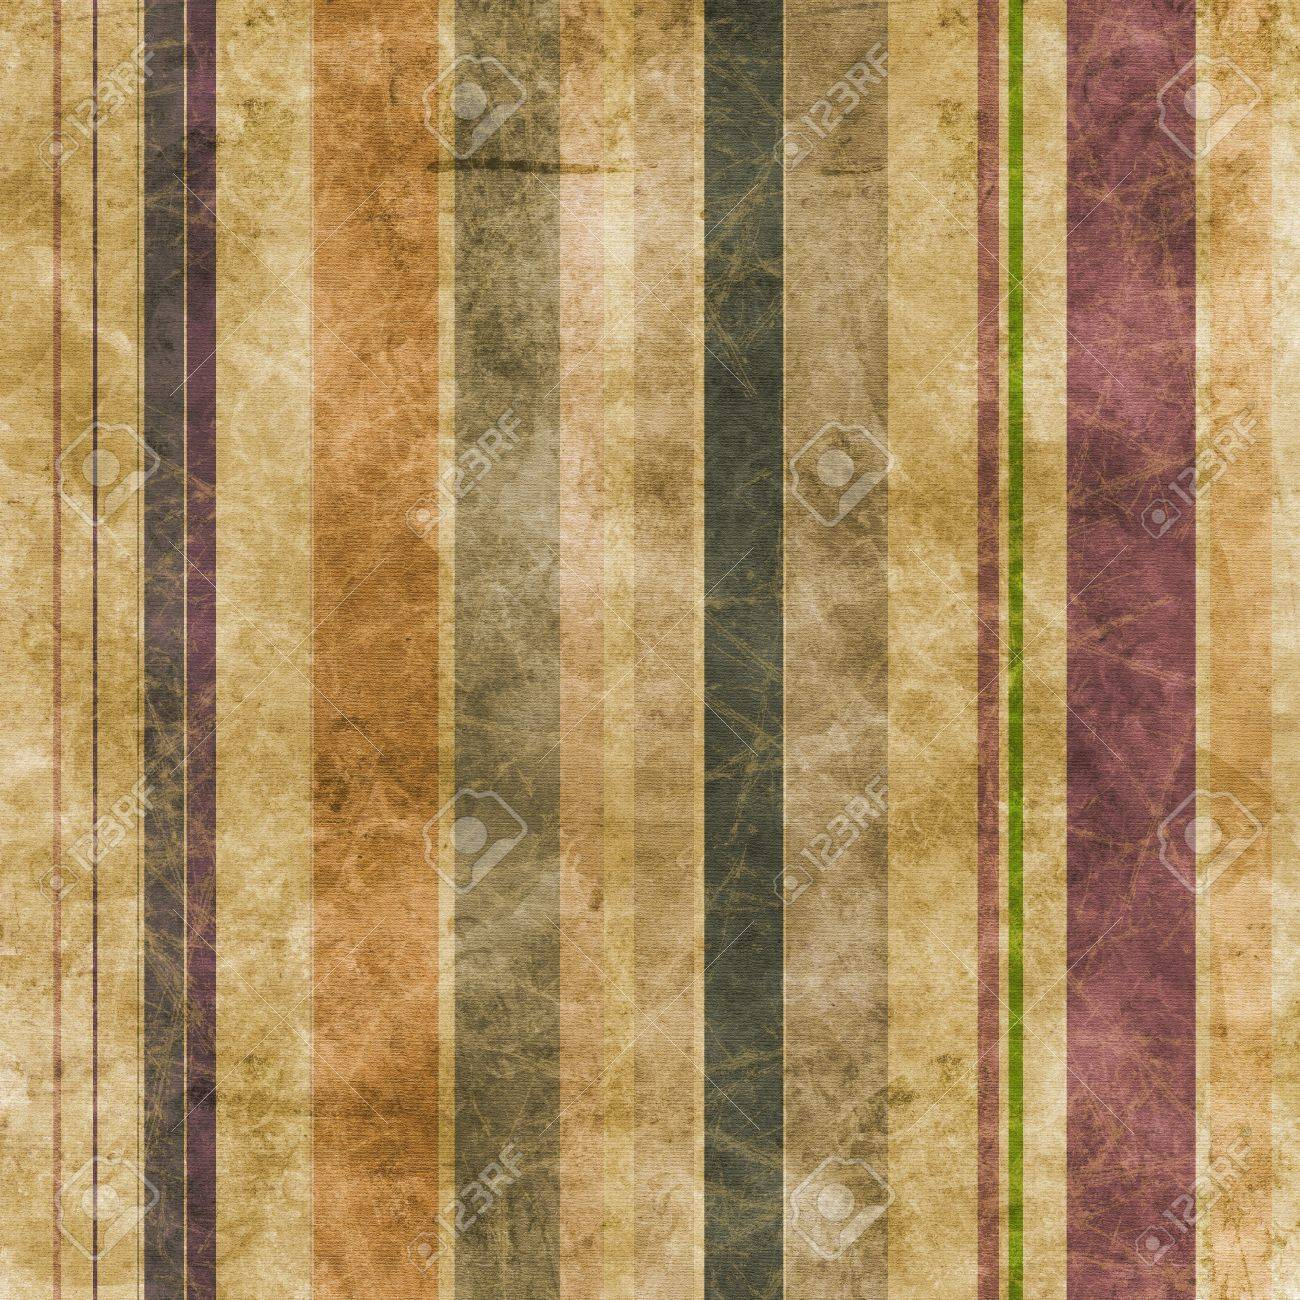 Grungy purple lines background Stock Photo - 9367098